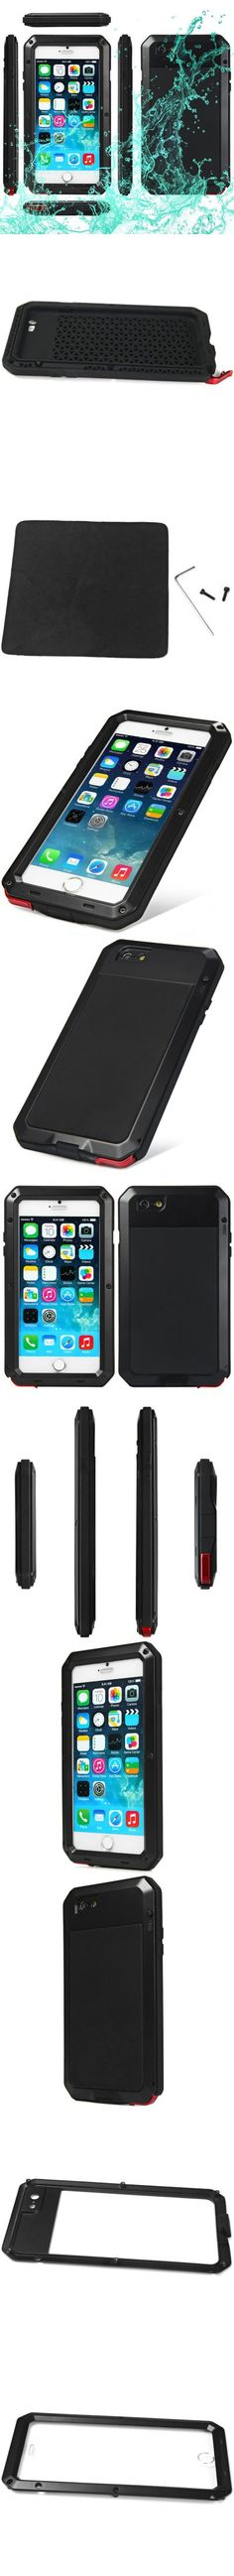 Aluminum Metal Gorilla Glass Military Waterproof Shockproof Dustproof Case for iPhone 6 Plus 6S Plus